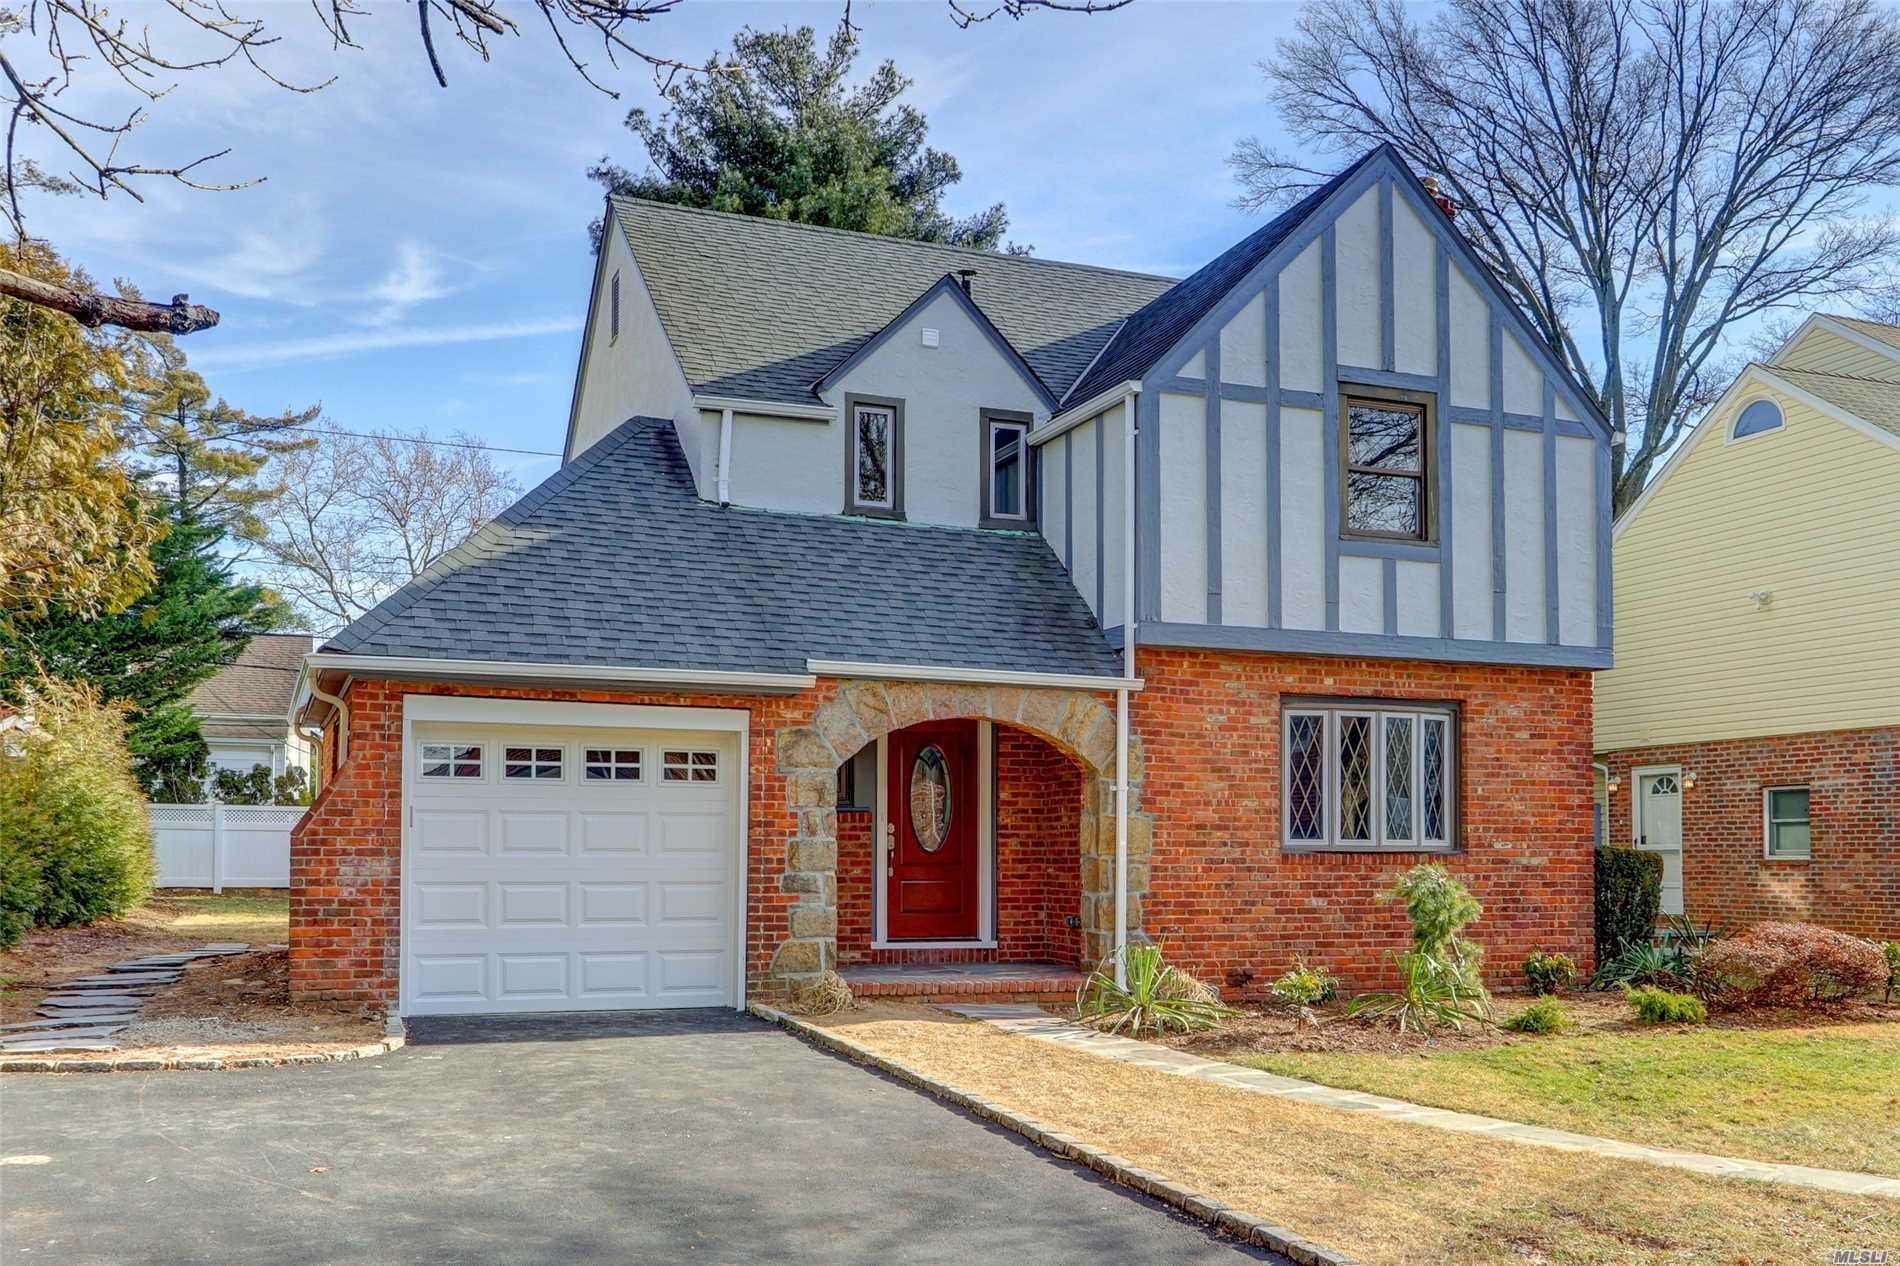 Newly Renovated Classic English Tudor. 5 Min Walk To Town And LIRR, Mstr Br W/Bth, Plus 2 Lg Br, 3.5 Bth, Hw Floors, All New Kitchen W/SS Appliances And Quartz Counter Tops And Open Floor Plan, Lg Dr And Lr W/Wood Burning Fireplace, All New Plumbing And Electric, New Energy Efficient Cac/Heat 2 Zones And Tankless Boiler, Full Finished Bsmt, Top Rated Manhasset Sd #6. Move Right In!